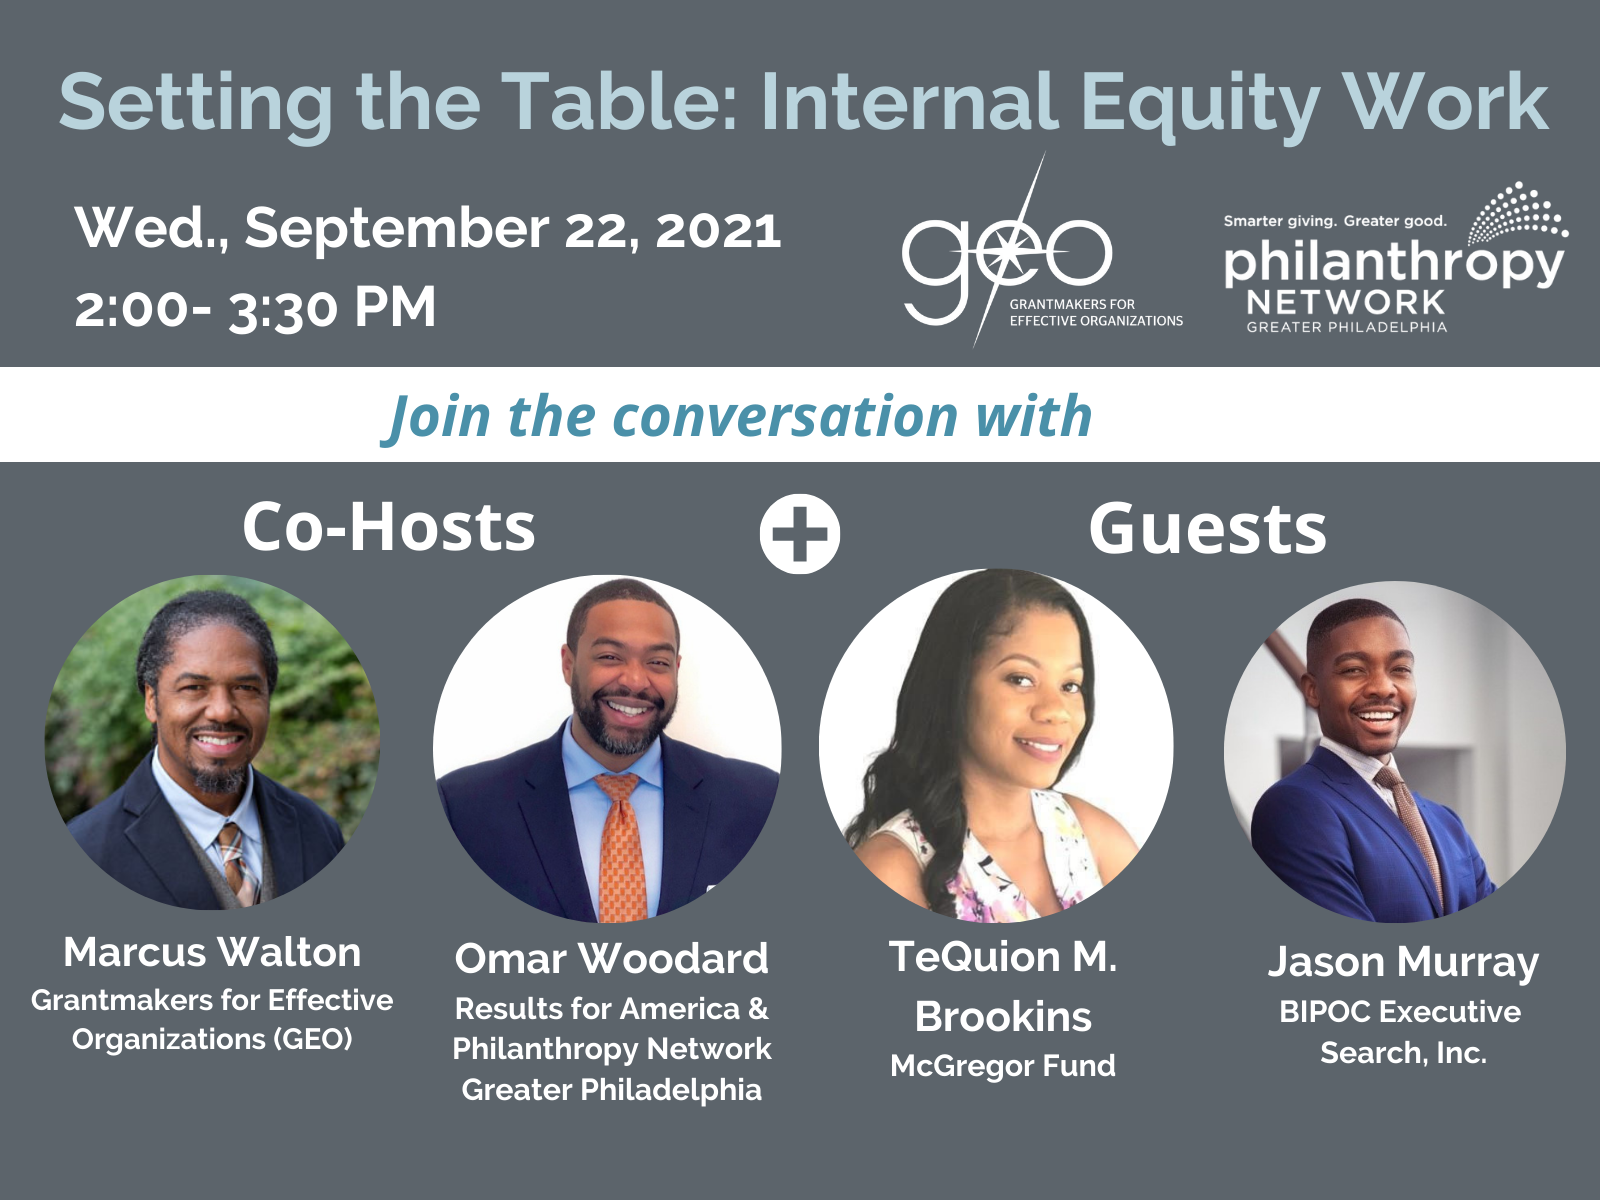 Setting the Table - Internal Equity Work